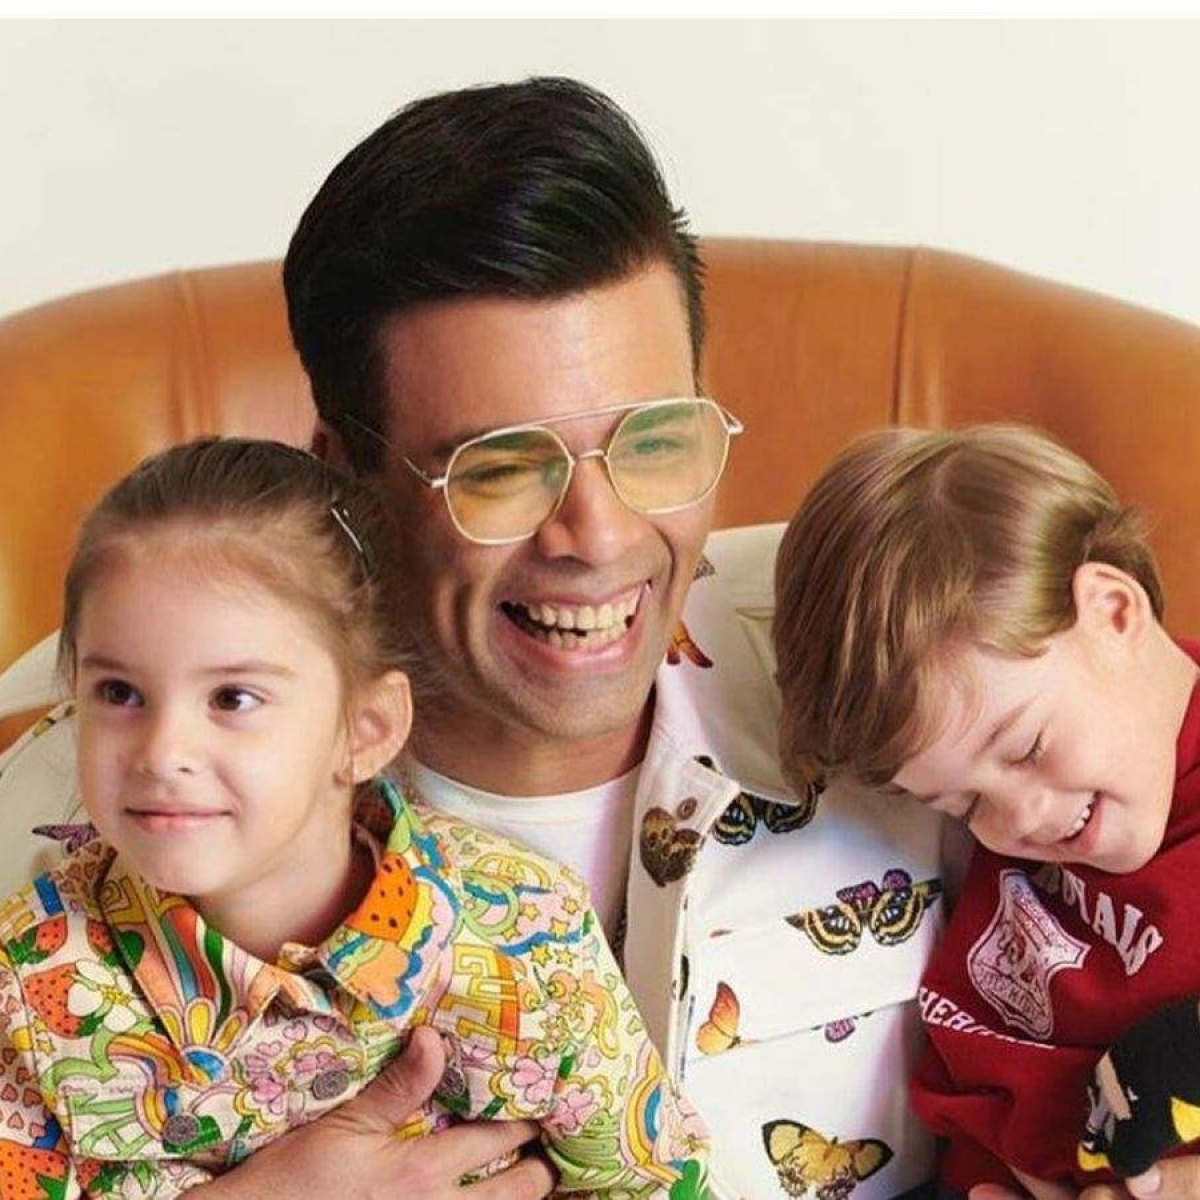 Watch: Karan Johar's twins Yash and Roohi ring in their birthday by roasting dad's sartorial choices